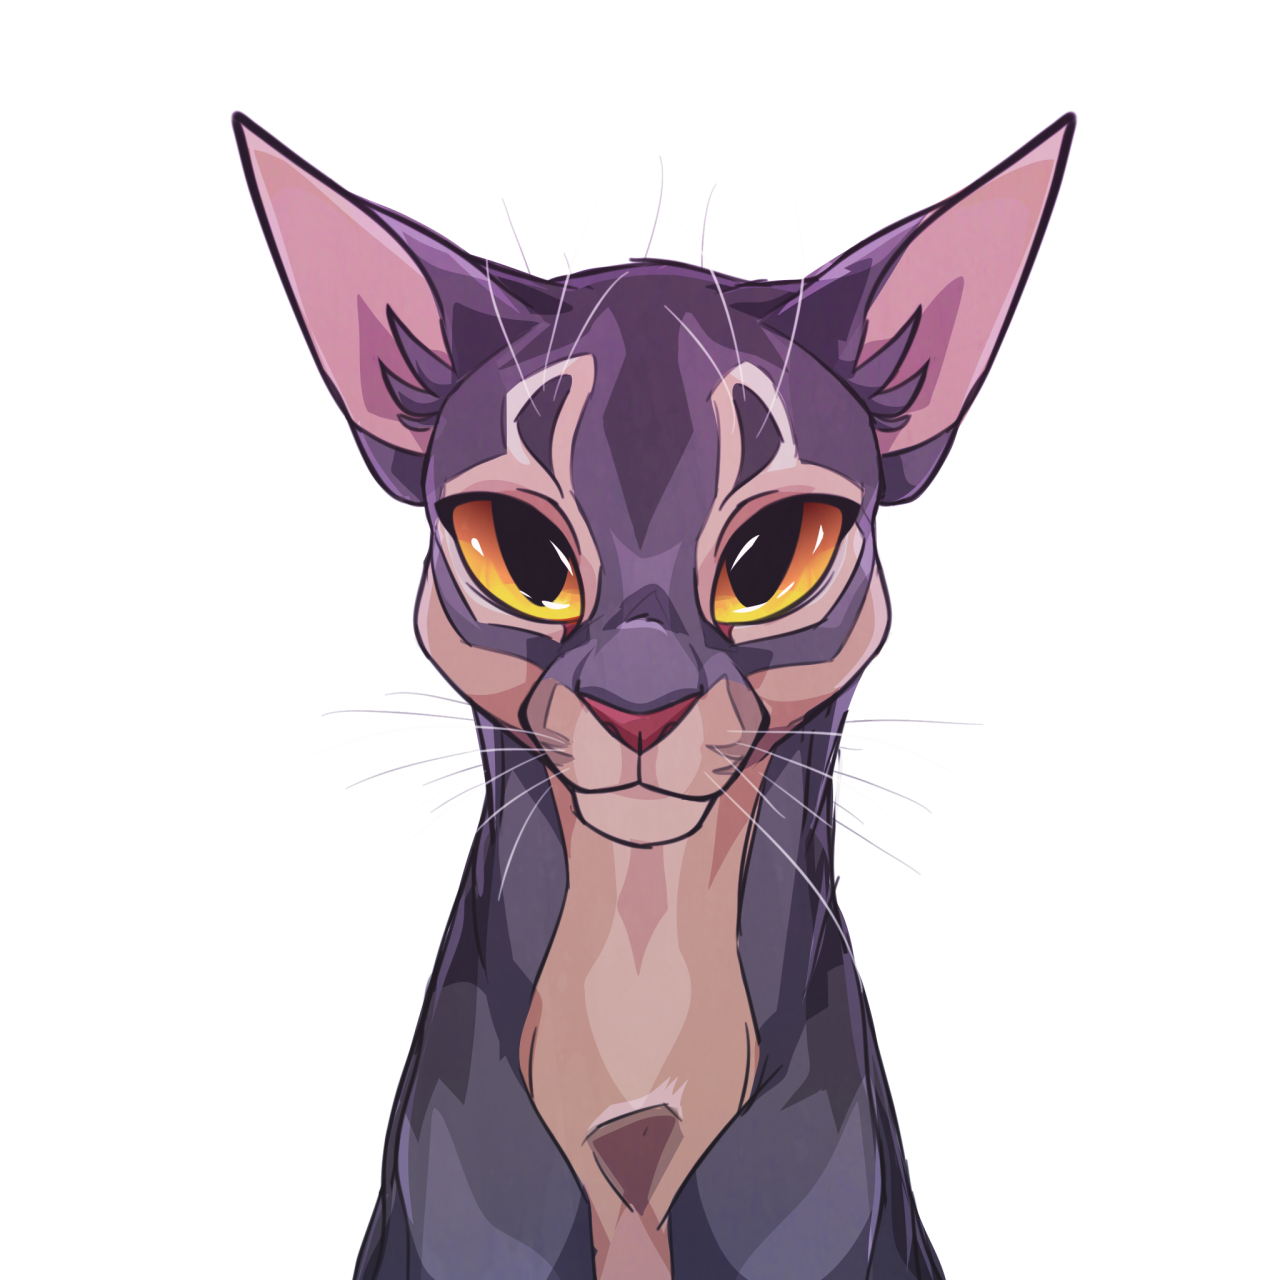 art blog (mostly cats) Cats illustration, Warrior cats